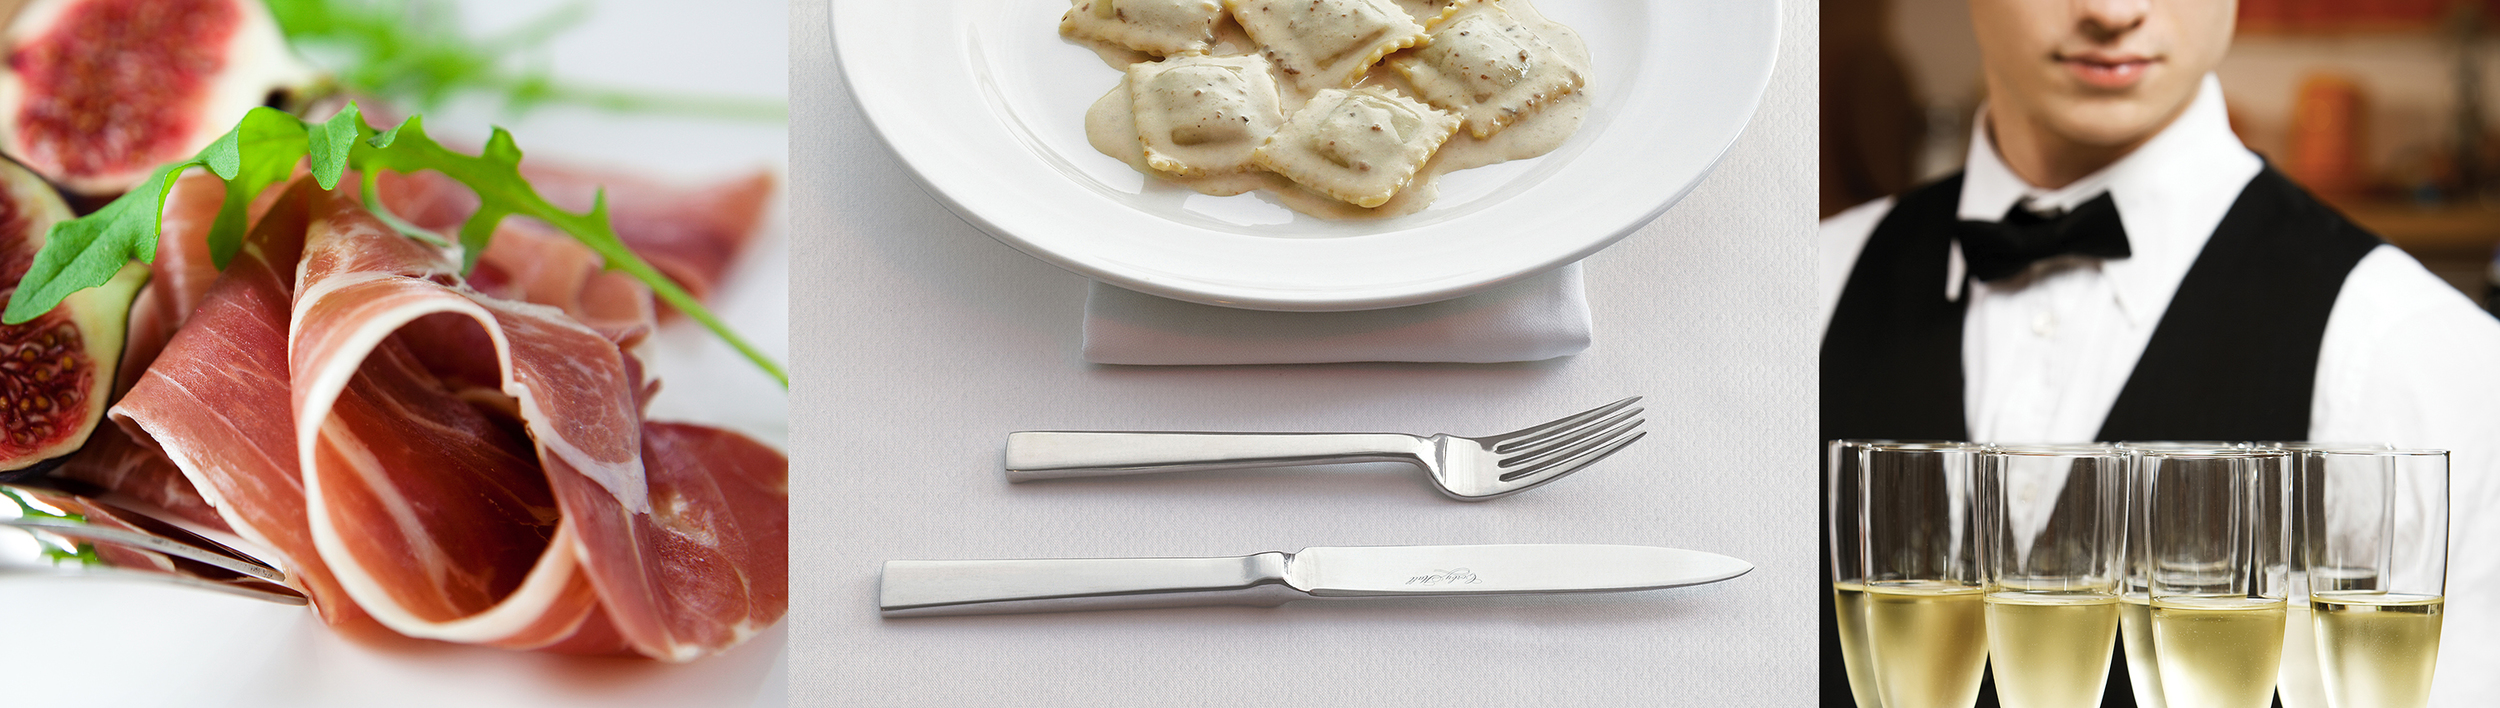 thinly sliced meat, ravioli and server with wine